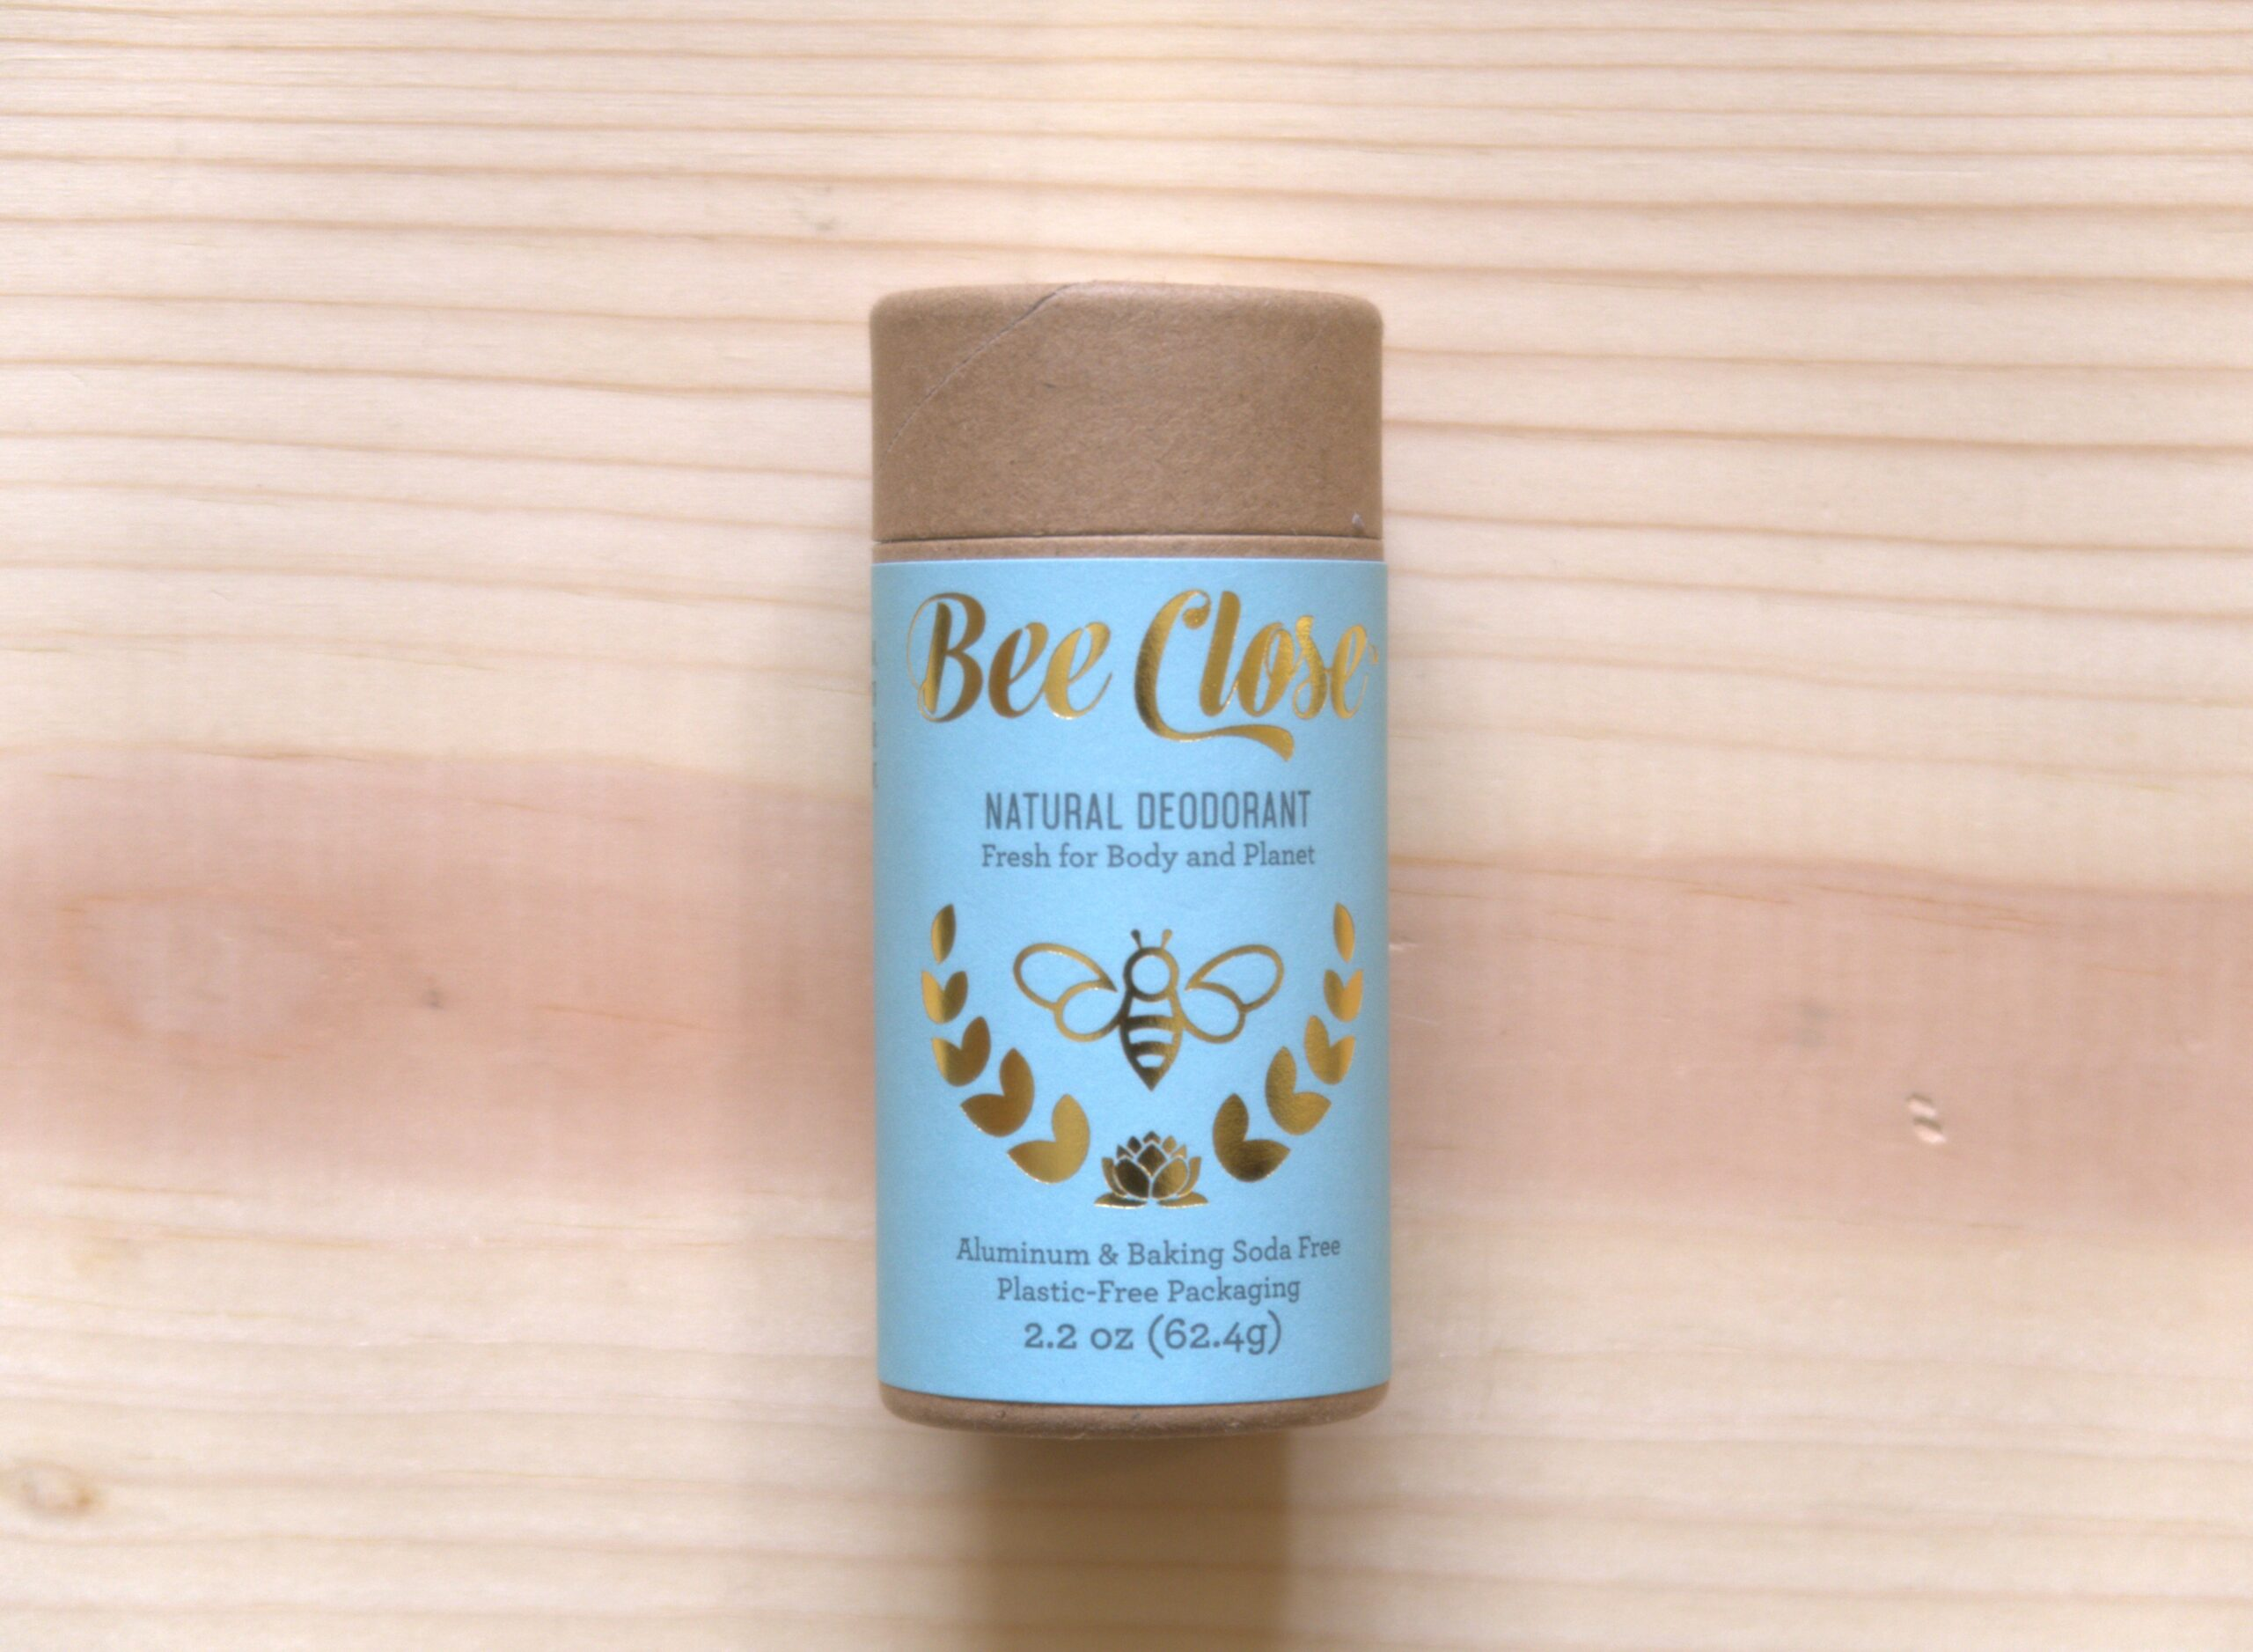 Bee Close Deo